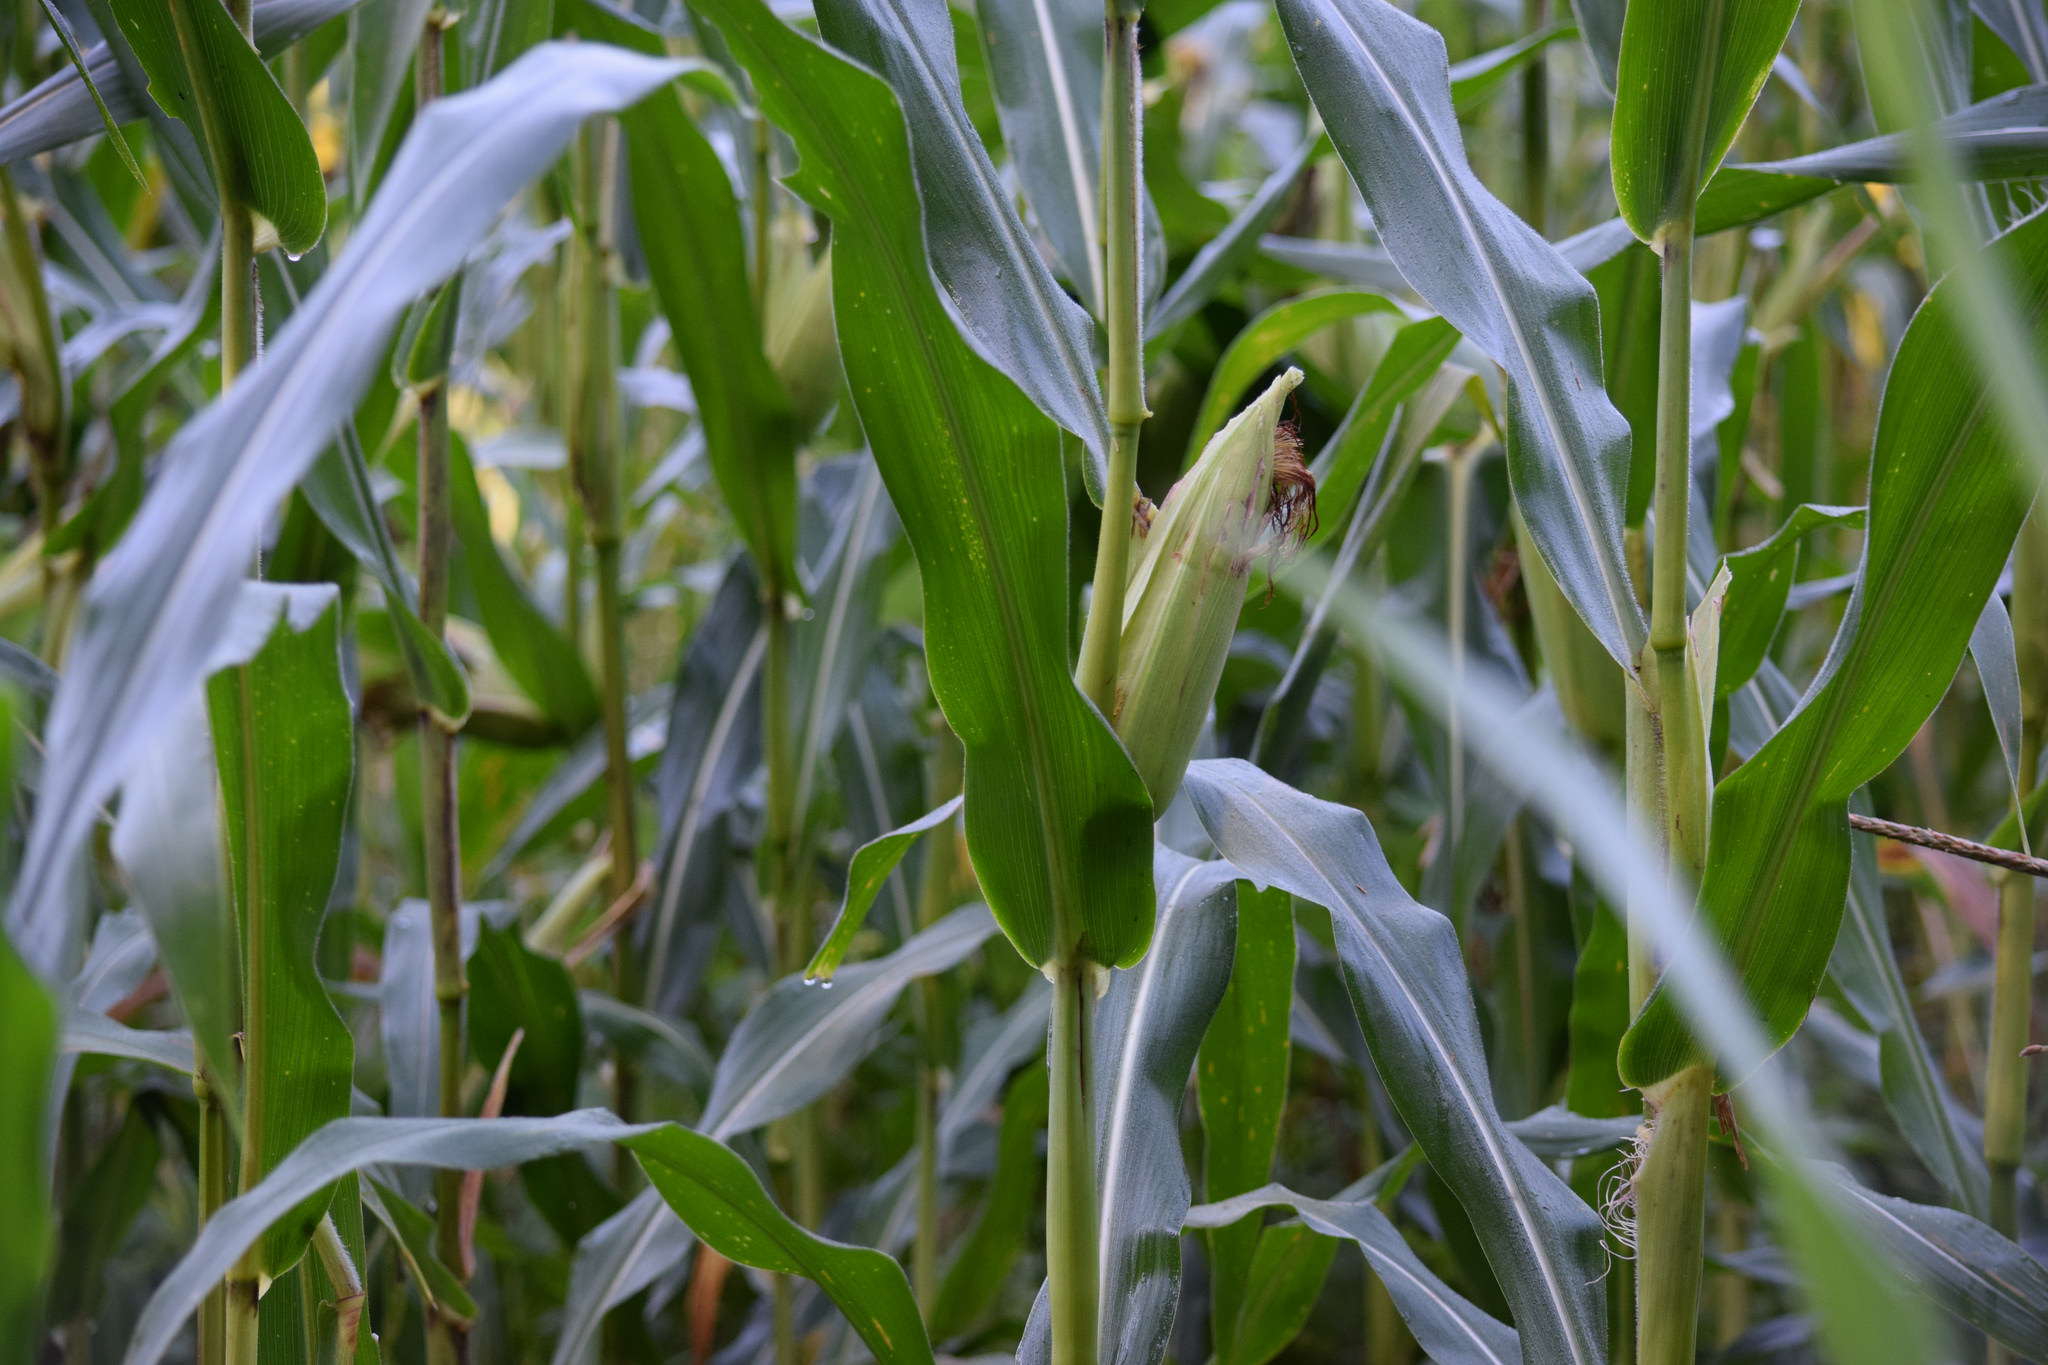 New Doubts About GMO Crops